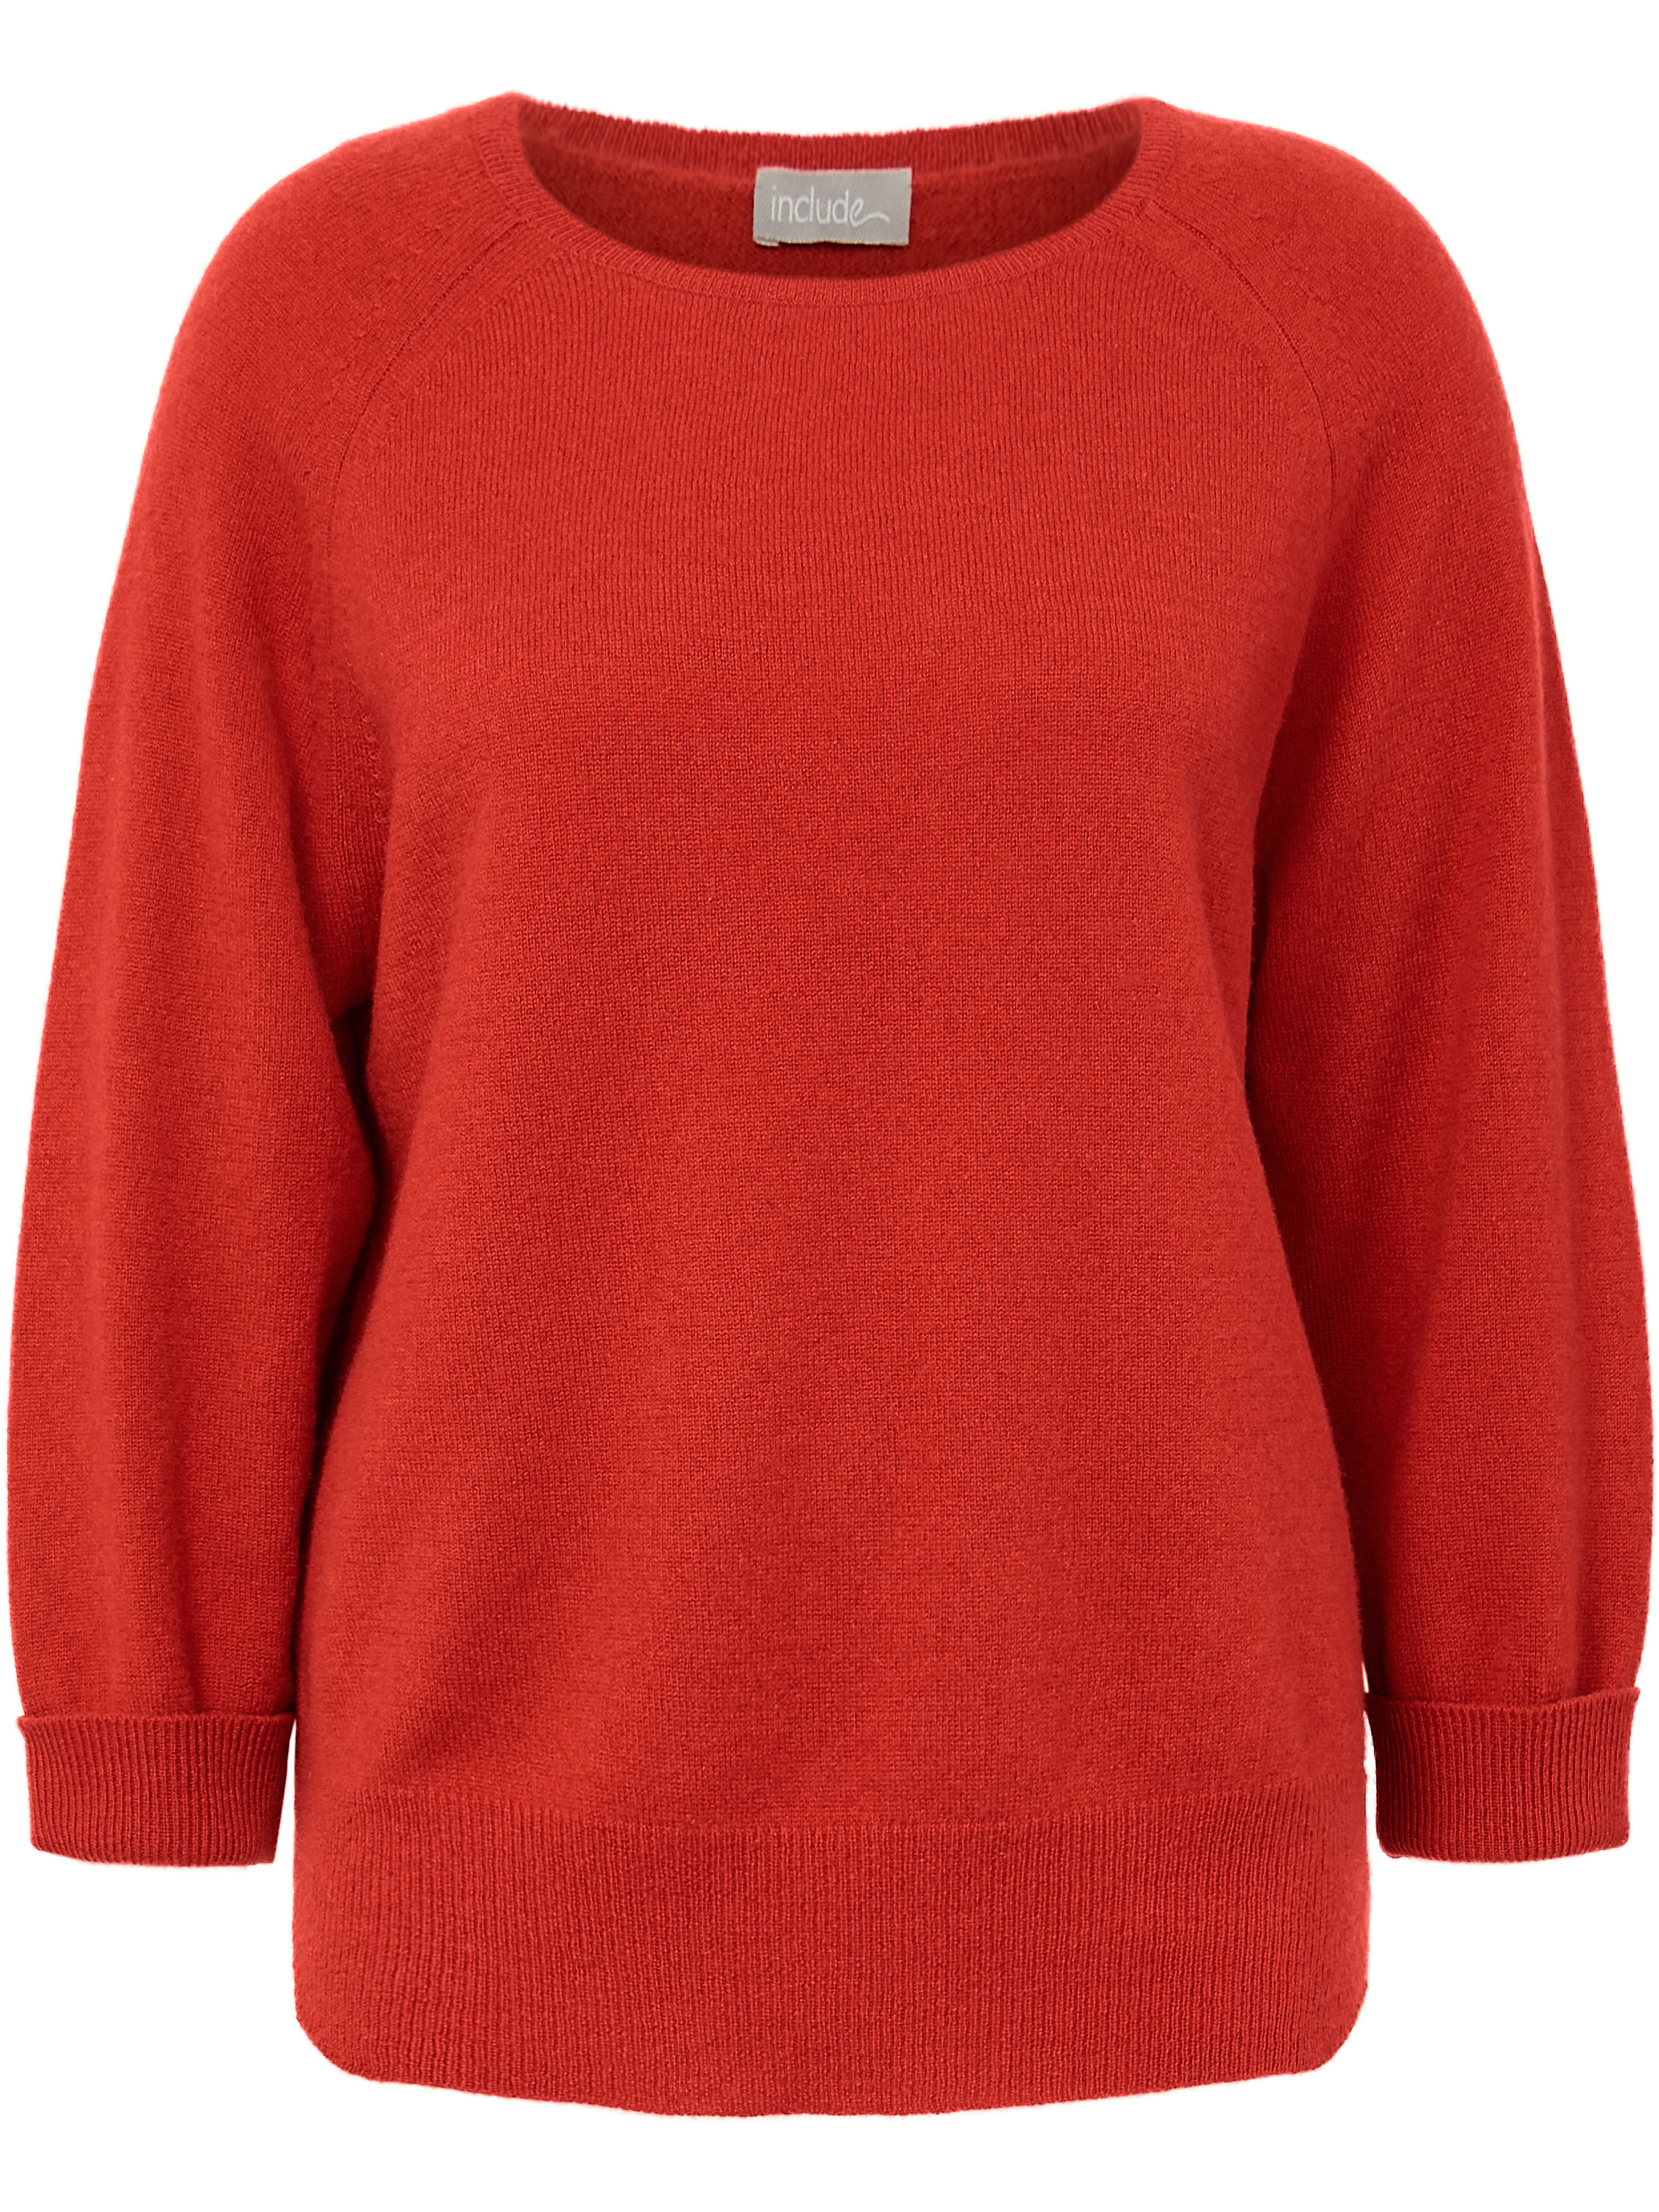 Le pull 100% cachemire  include rouge taille 46